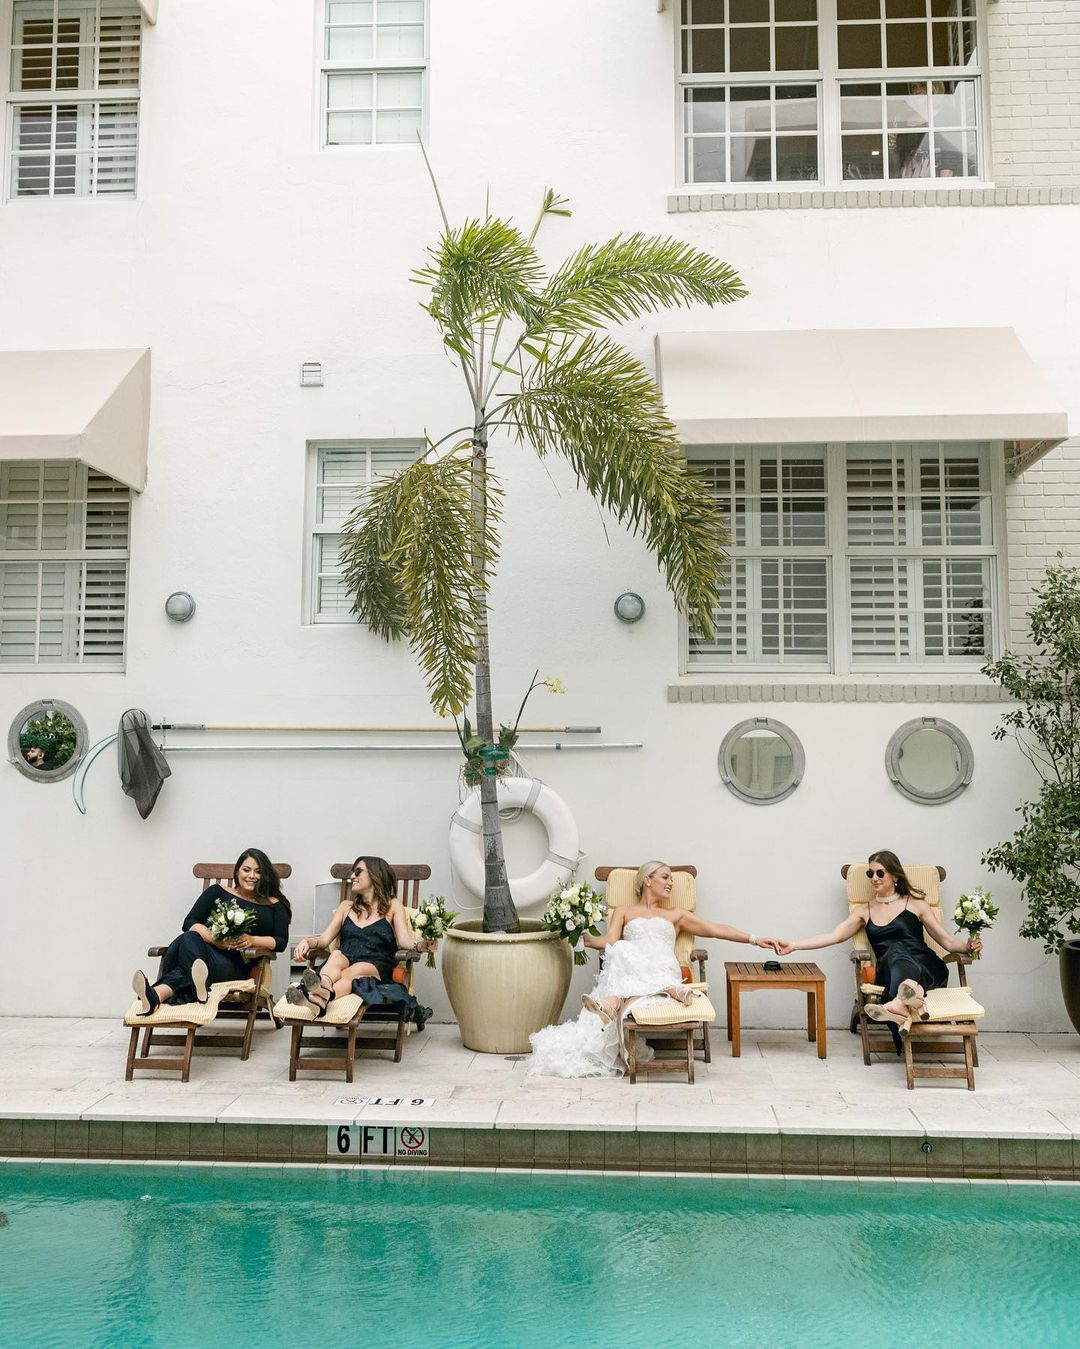 The bride and her bridesmaids relaxing by the pool